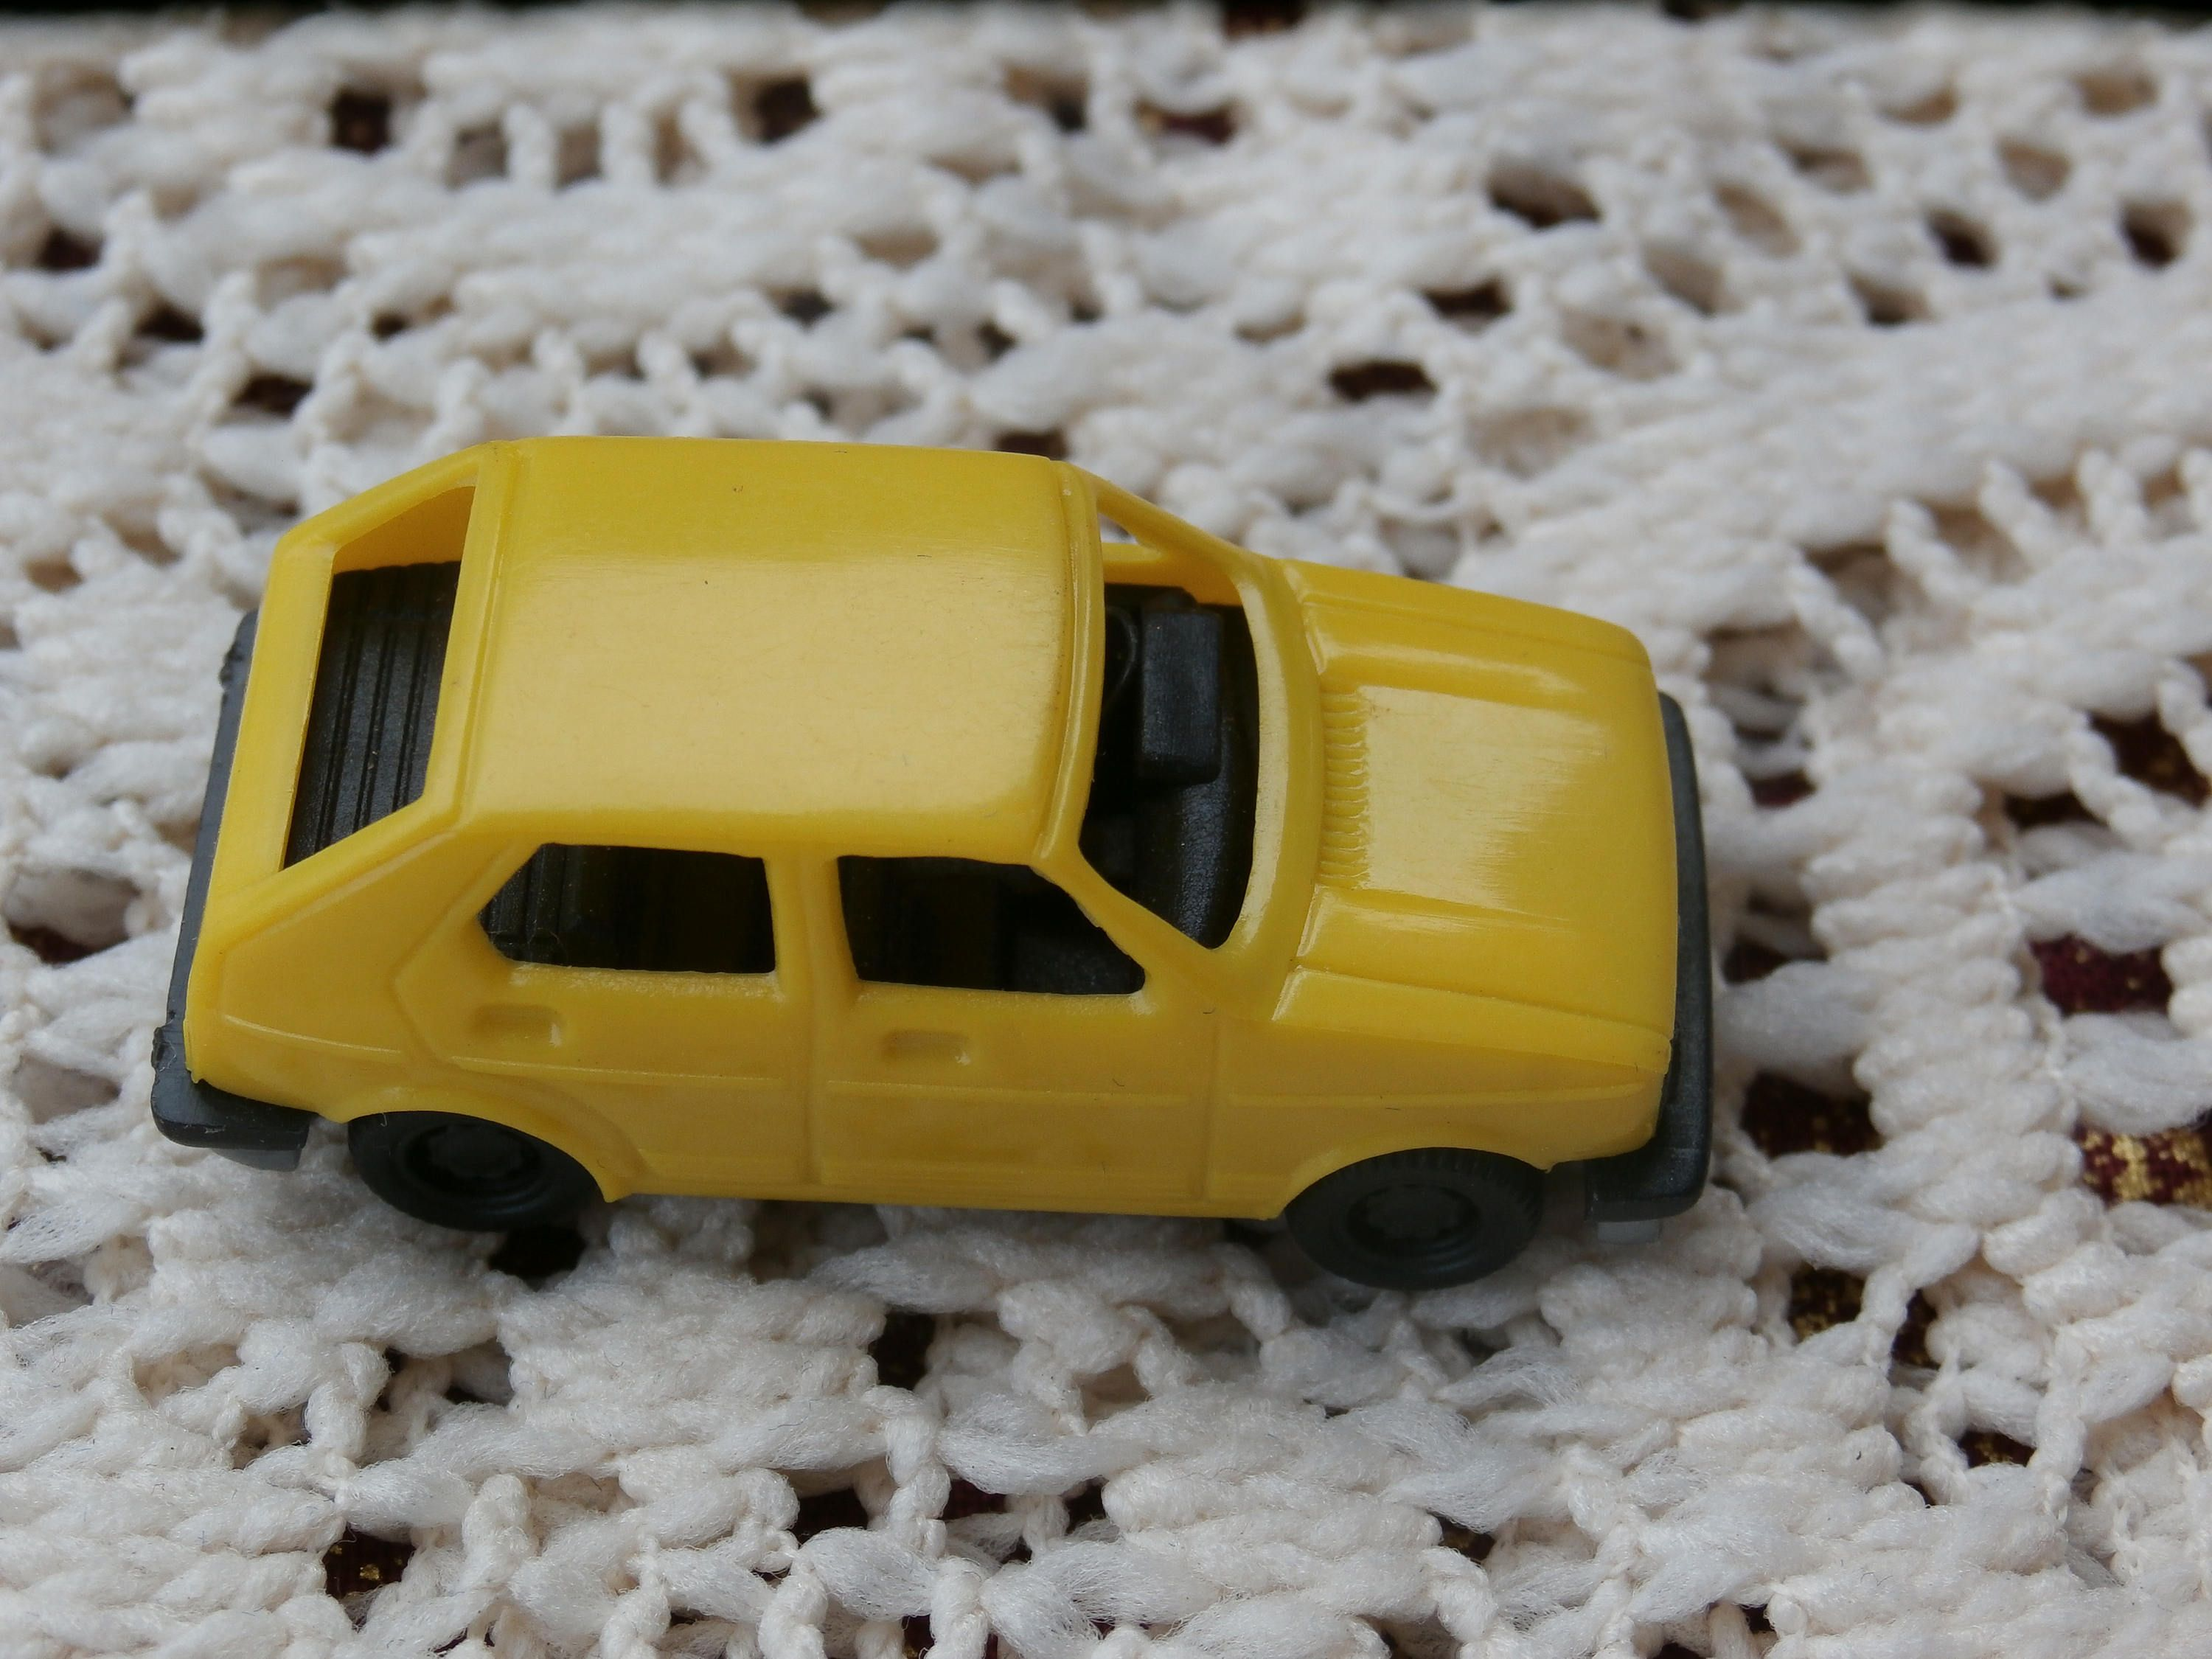 Yellow Golf LS Miniature Car 1 72 HO Scale Plastic Vehicle Made in